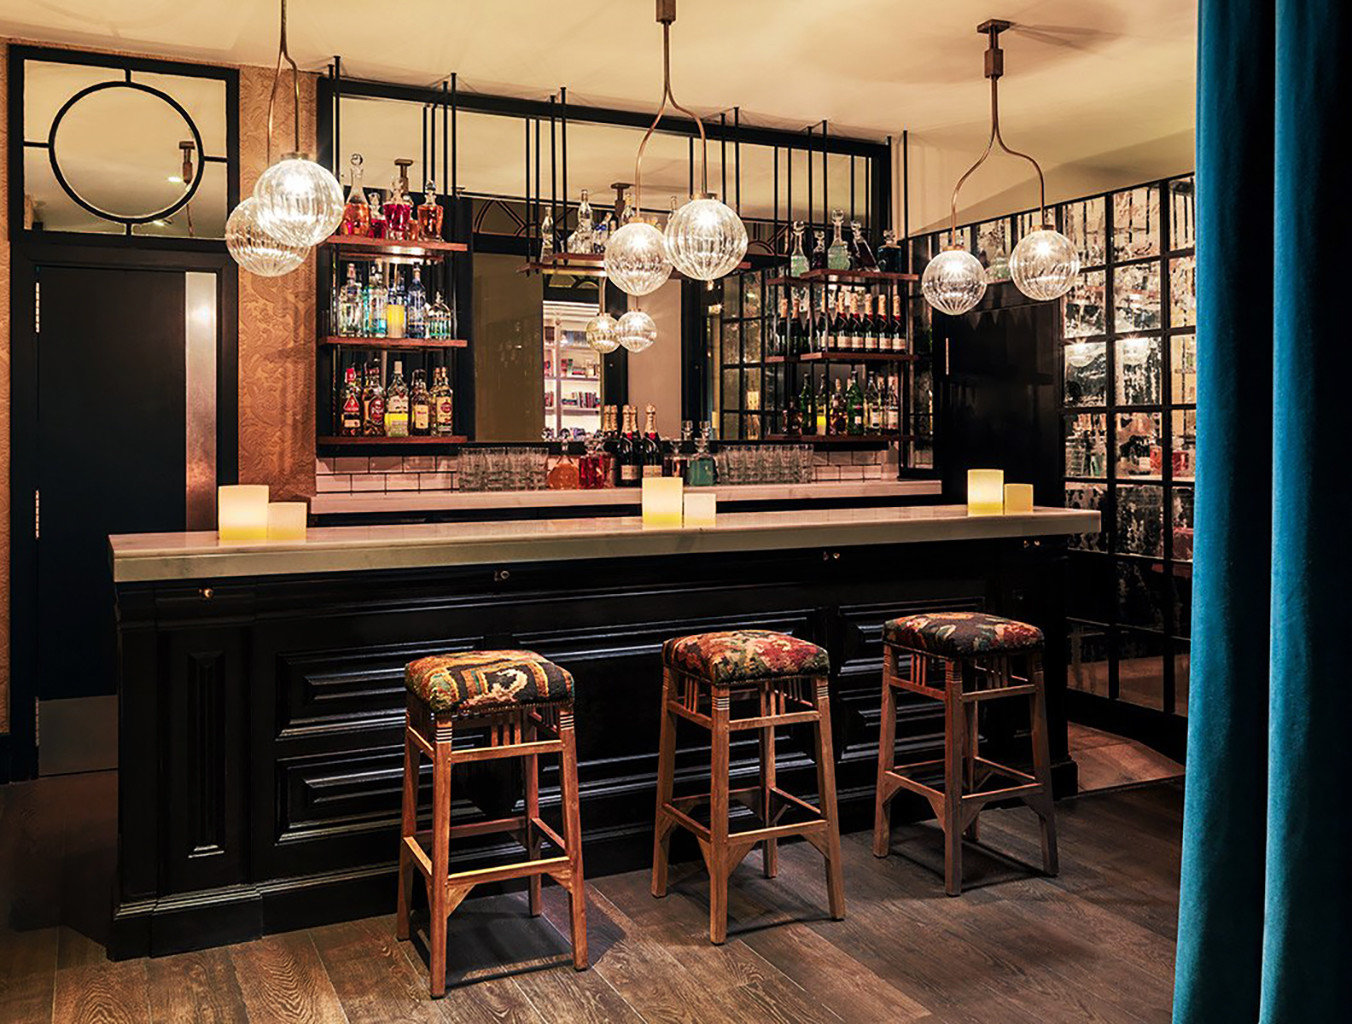 recreation room Bar home cabinetry restaurant cottage store